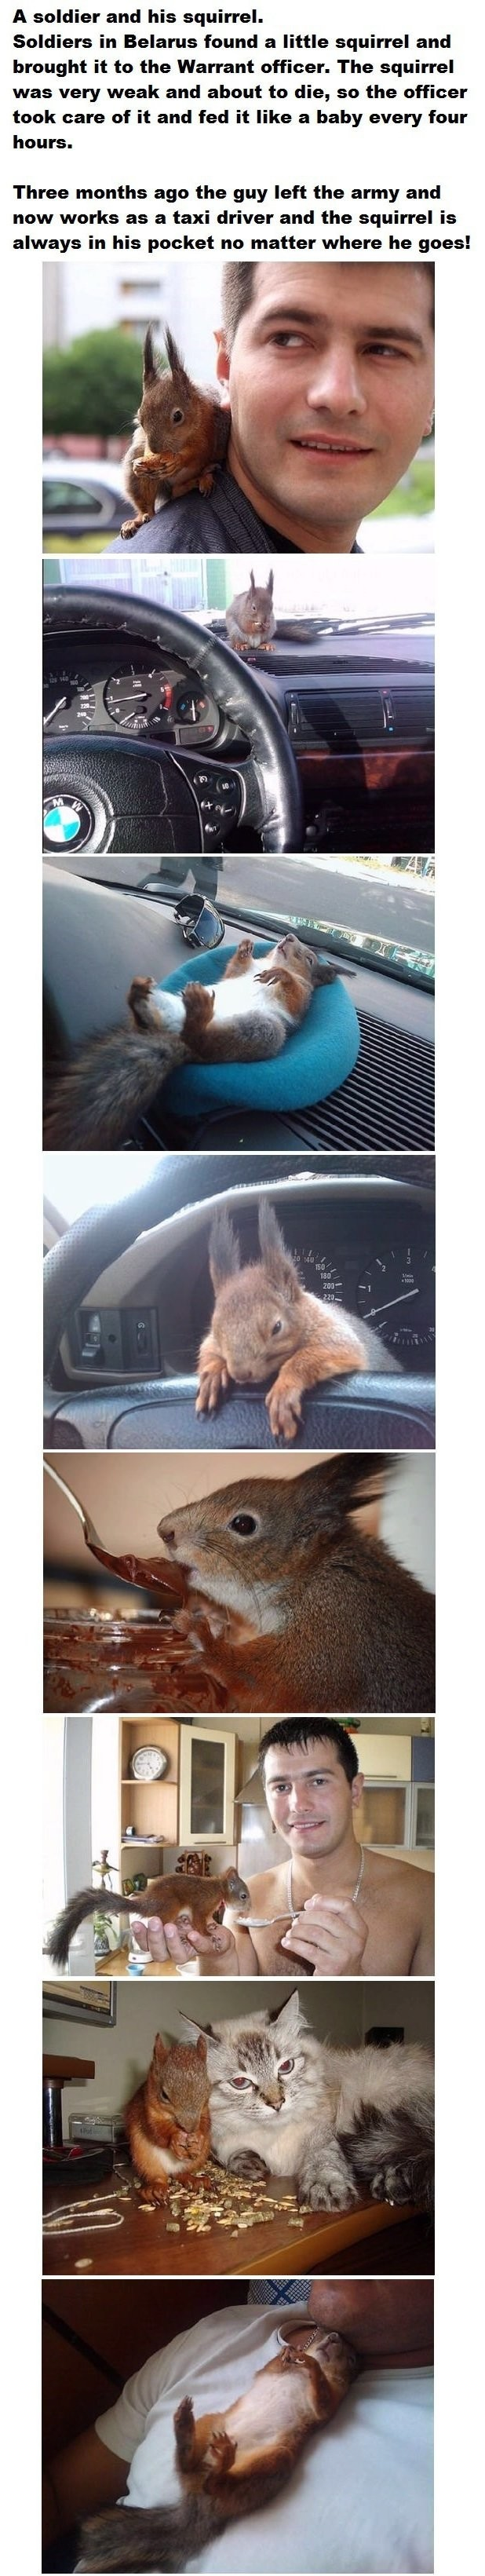 Squirrel Bro. join list: CuteThings (149 subs)Mention History.. The squirrel seems to be everywhere but his pocket